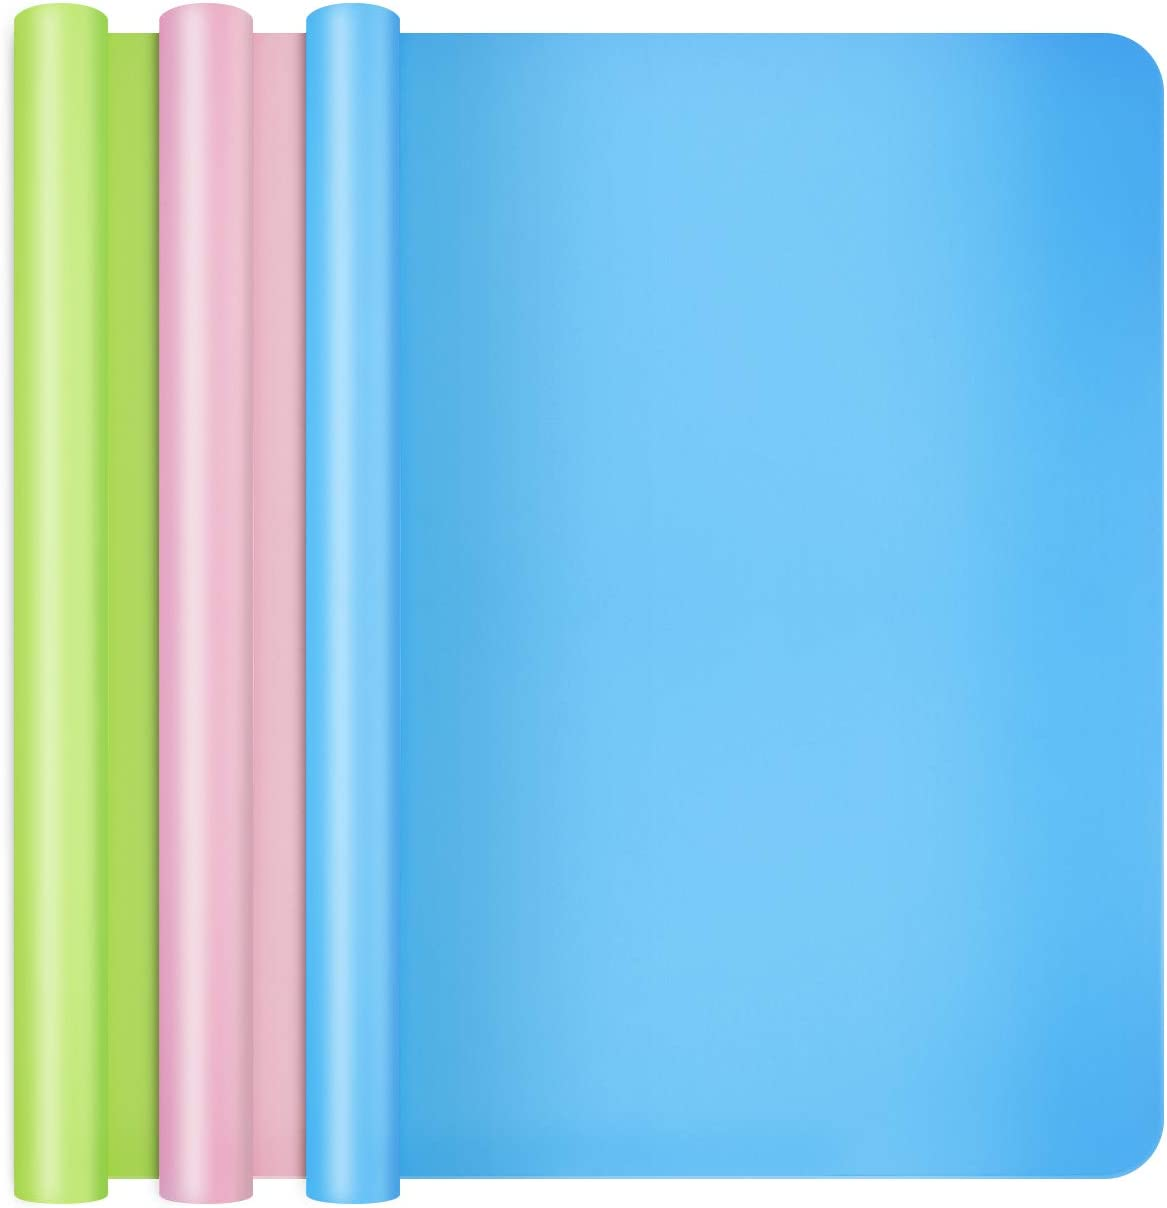 Large Max 78% OFF Silicone Sheet for Crafts Gartful by 15.7 PCS Save money 3 19.7 inch